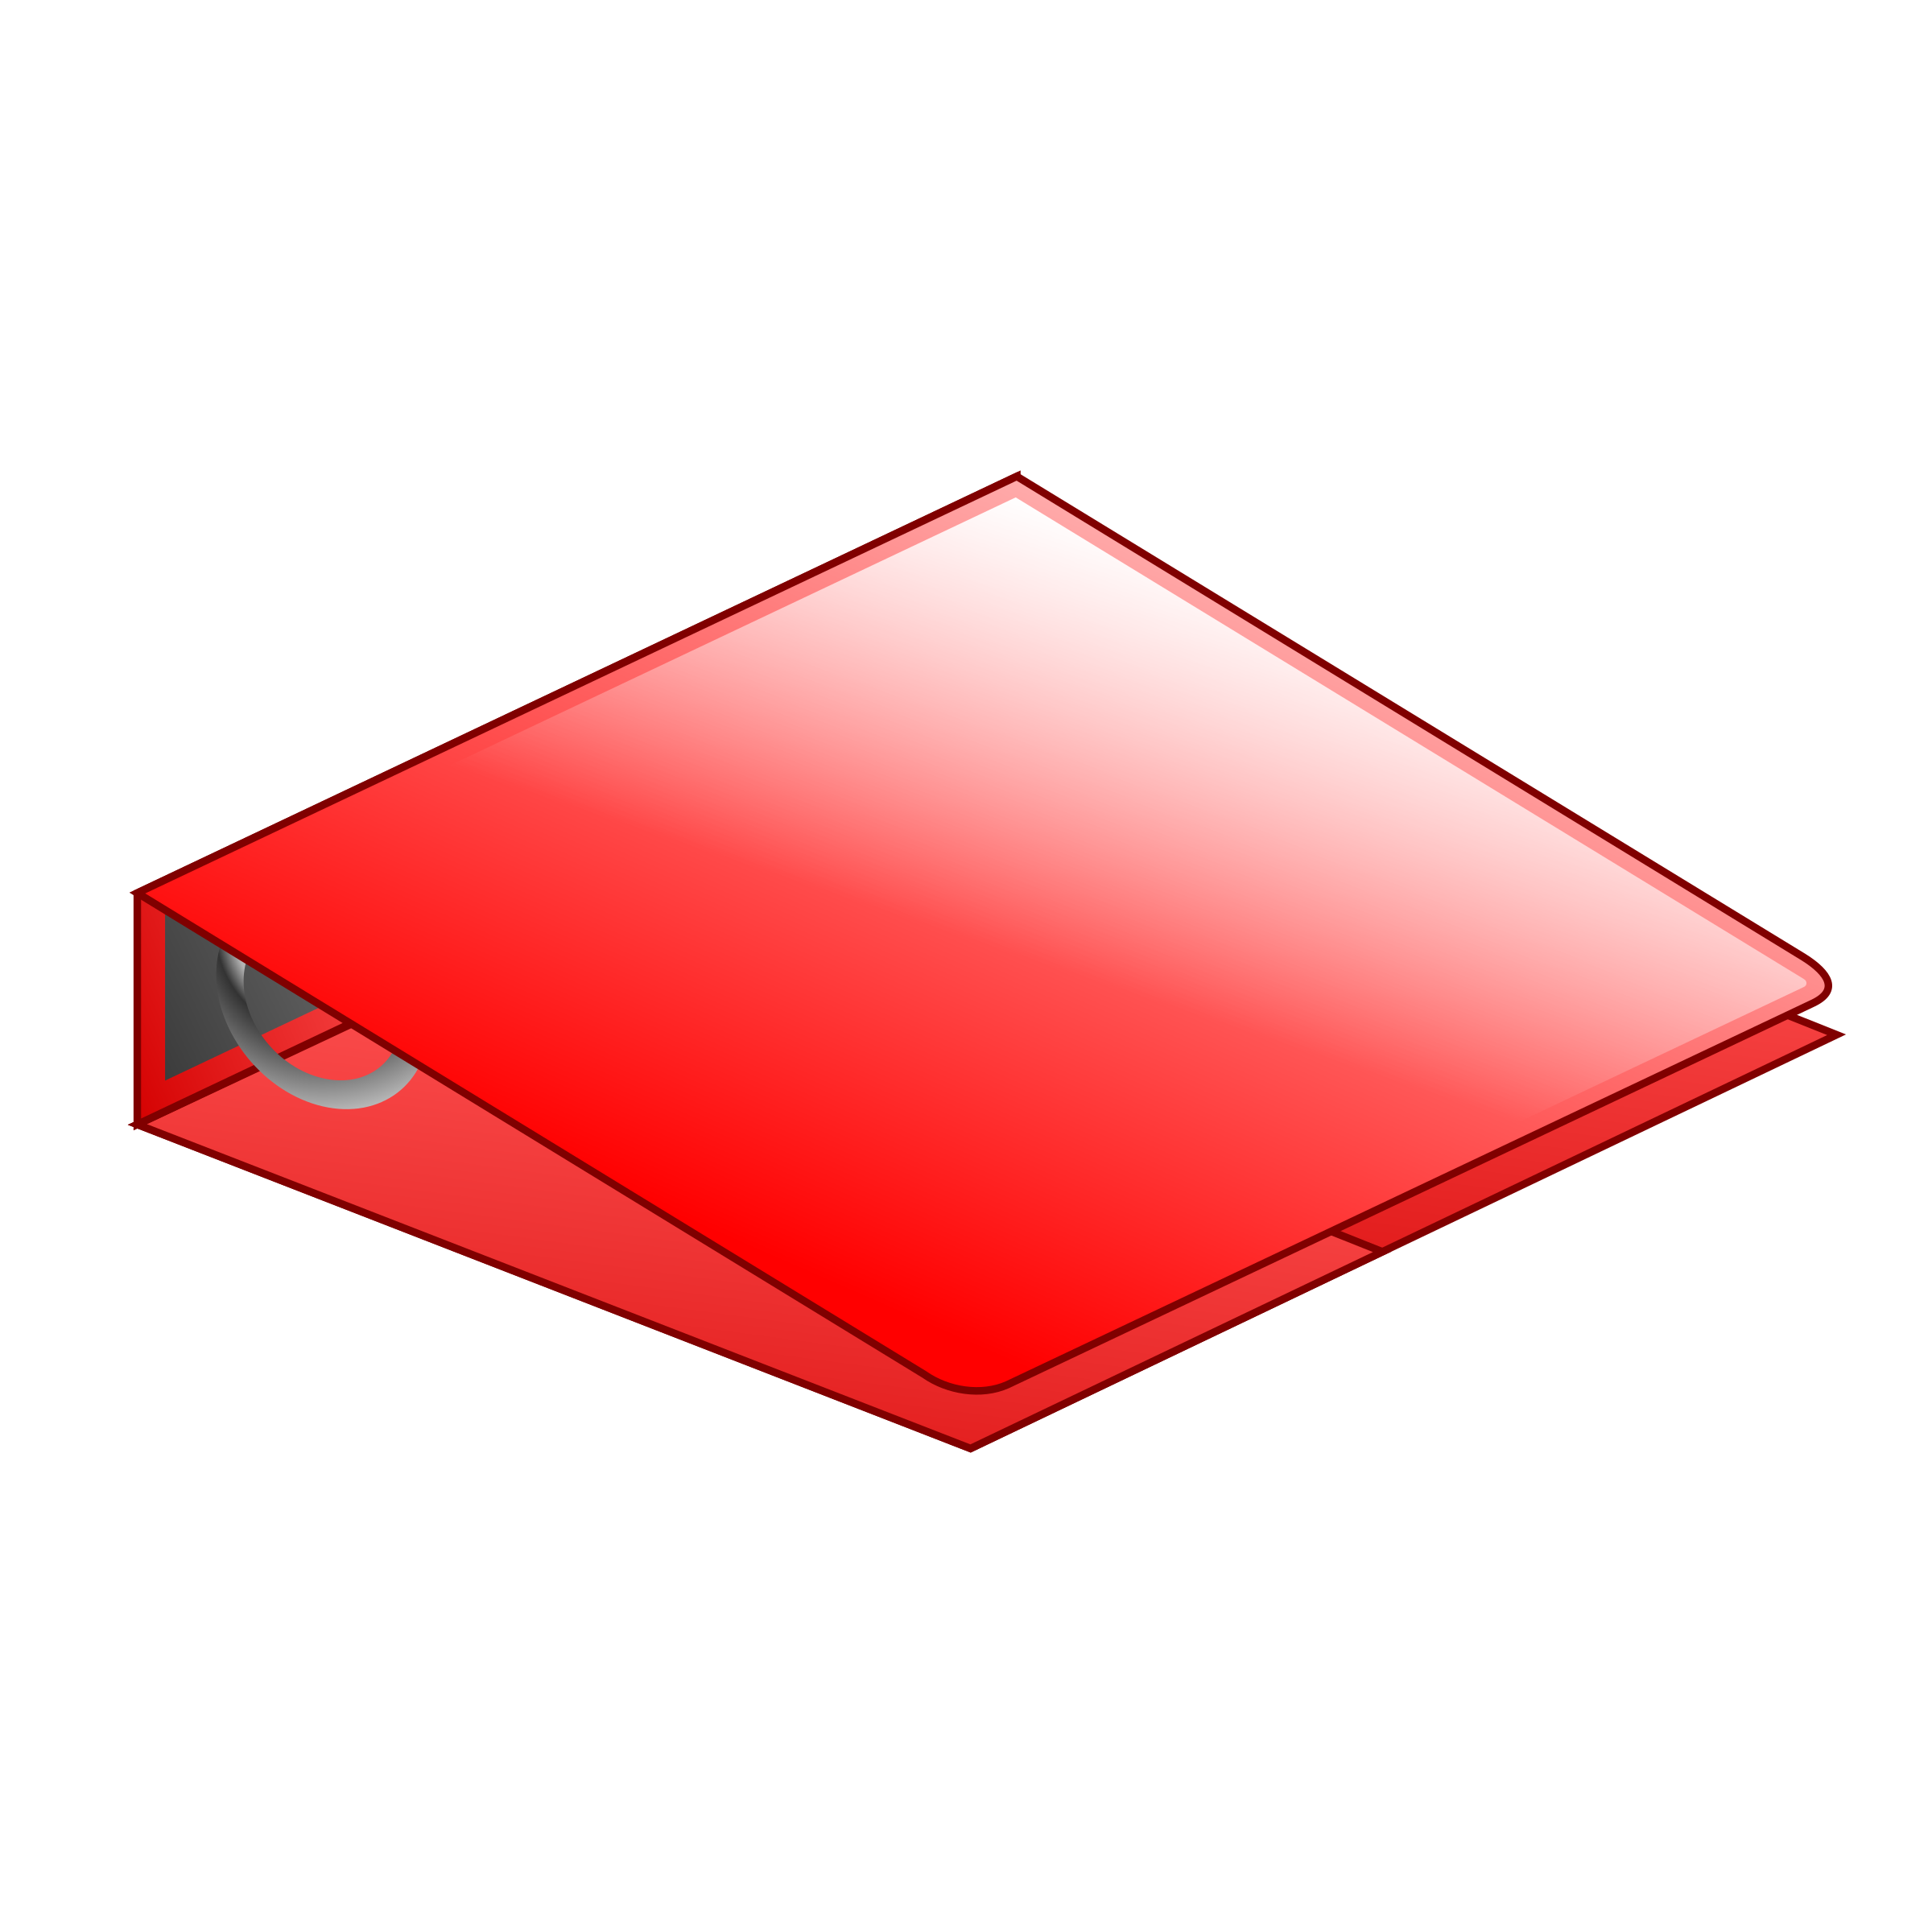 Square clipart red color. Ring binder icons png